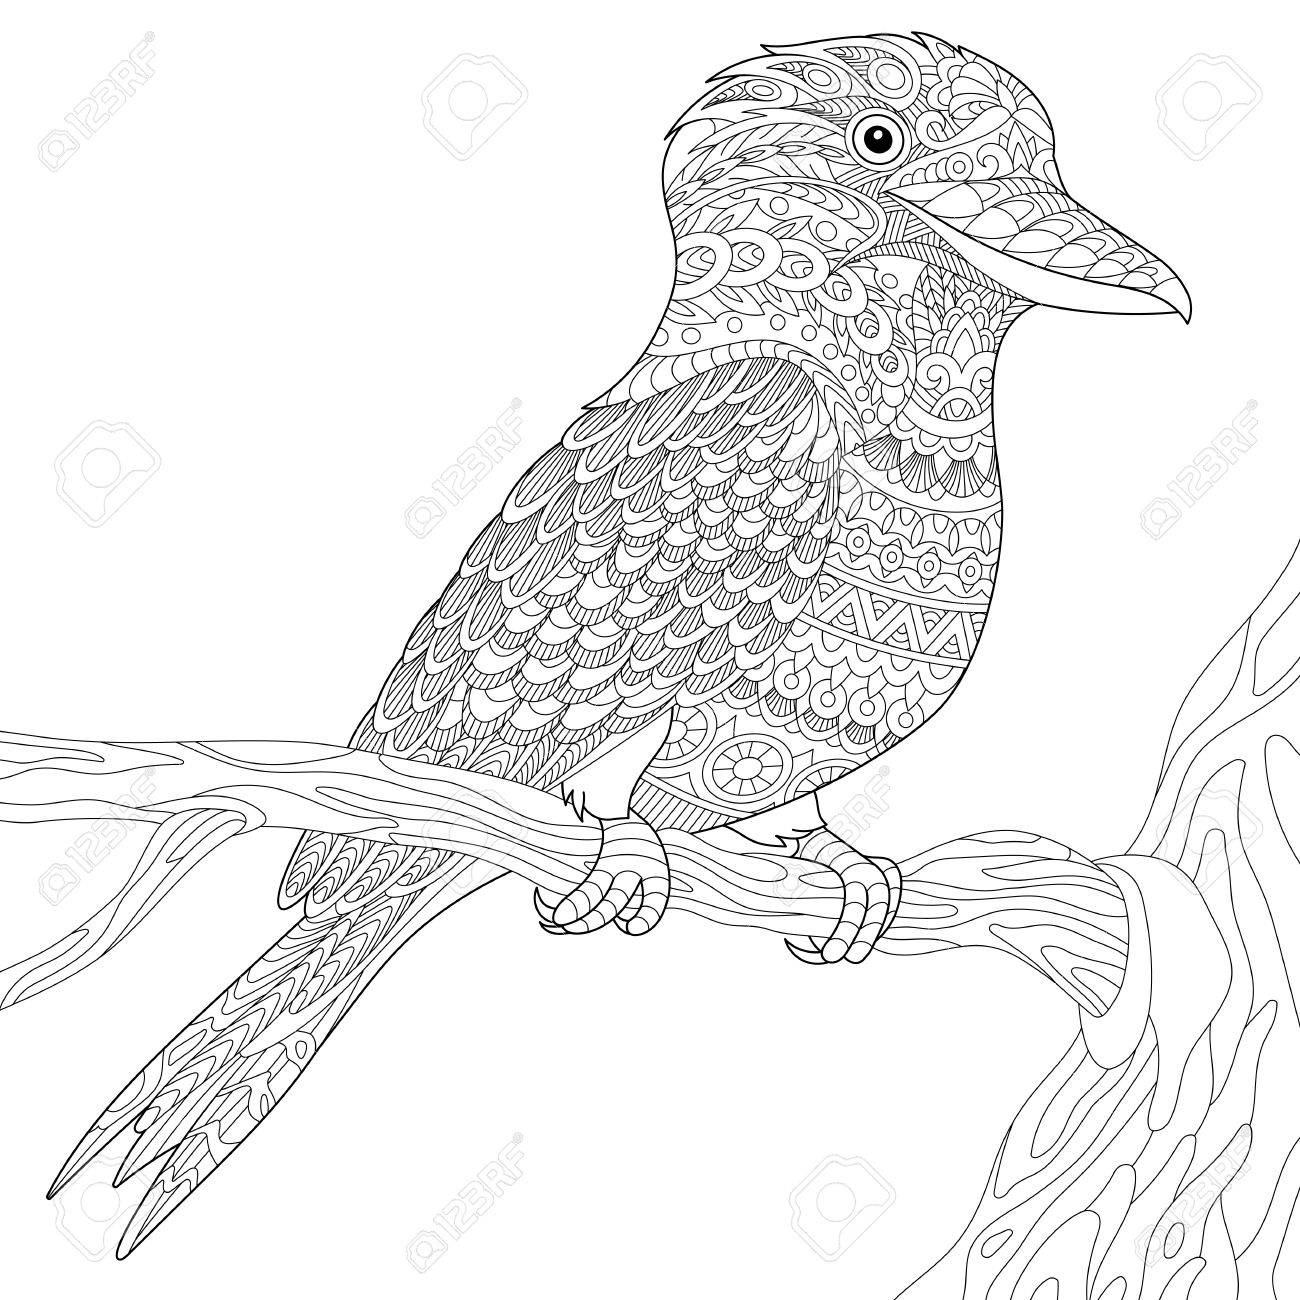 Stylized Australian Kookaburra Bird Isolated On White Background Freehand Sketch For Adult Anti Stress